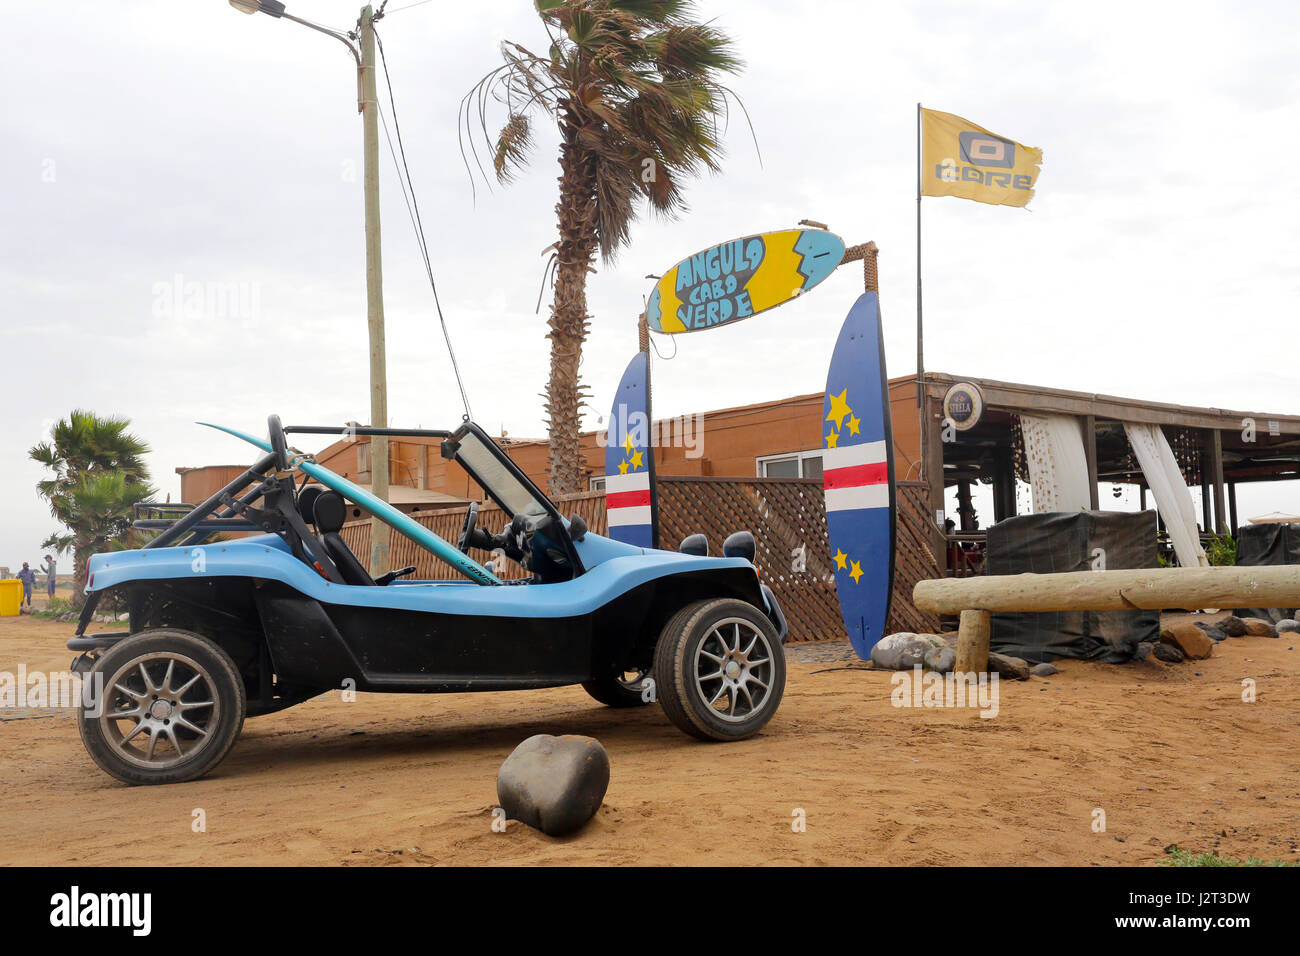 Beach Buggy parked outside Surf School - Stock Image